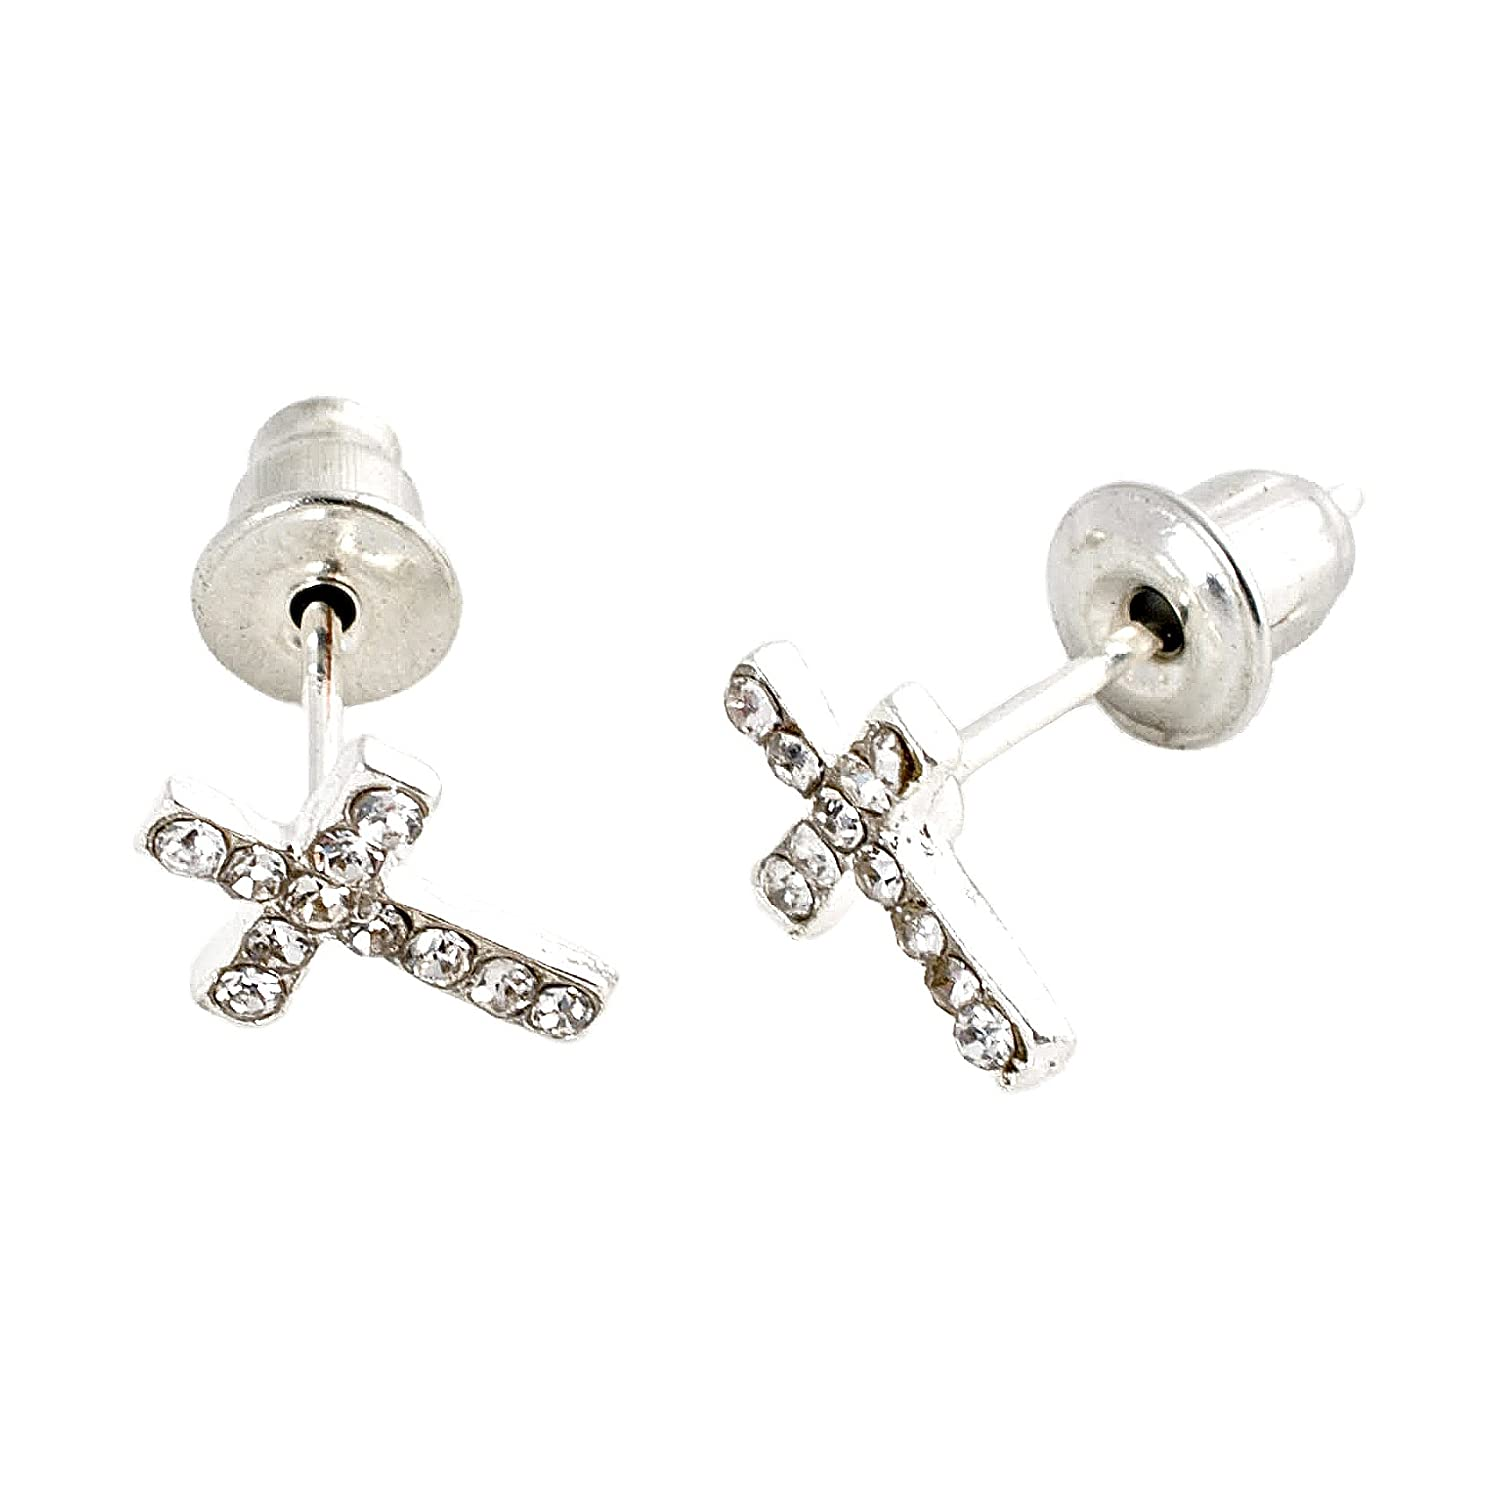 Geralin Gioielli Women Earrings Silver Cross Stud Earrings Unisex Fashion Diamante Rhinestones Vintage